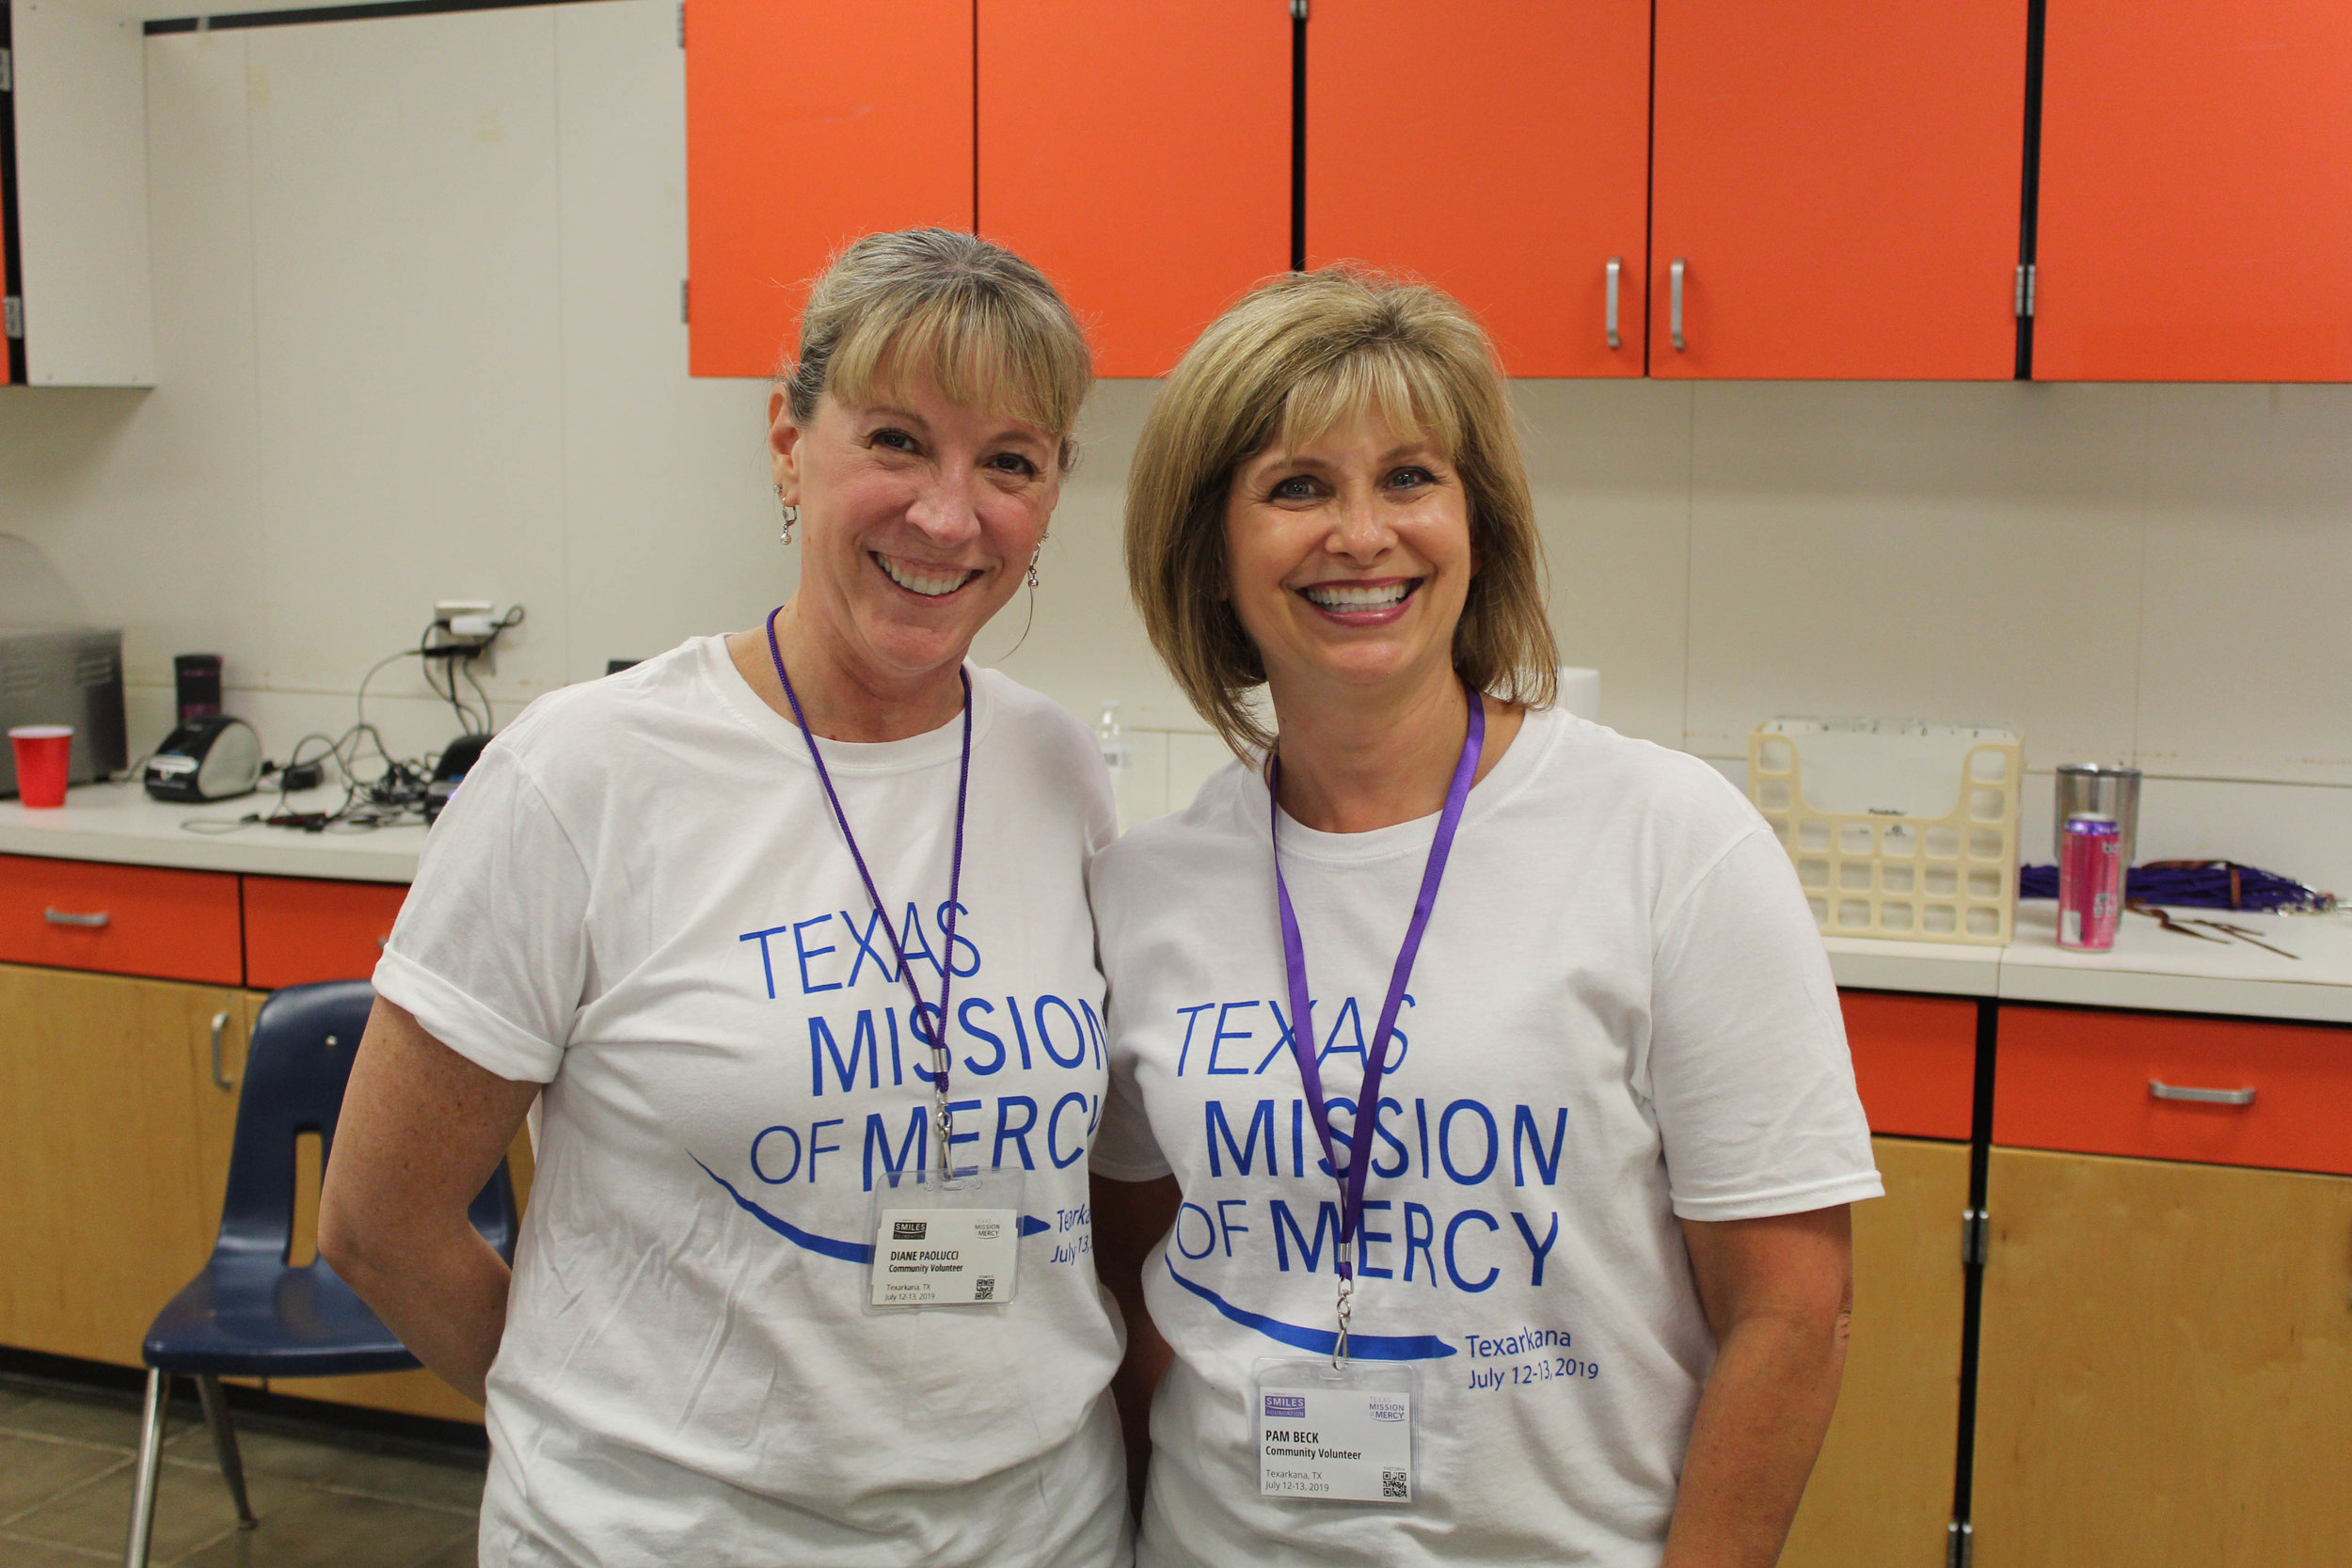 Diane Paolucci and Pam Beck